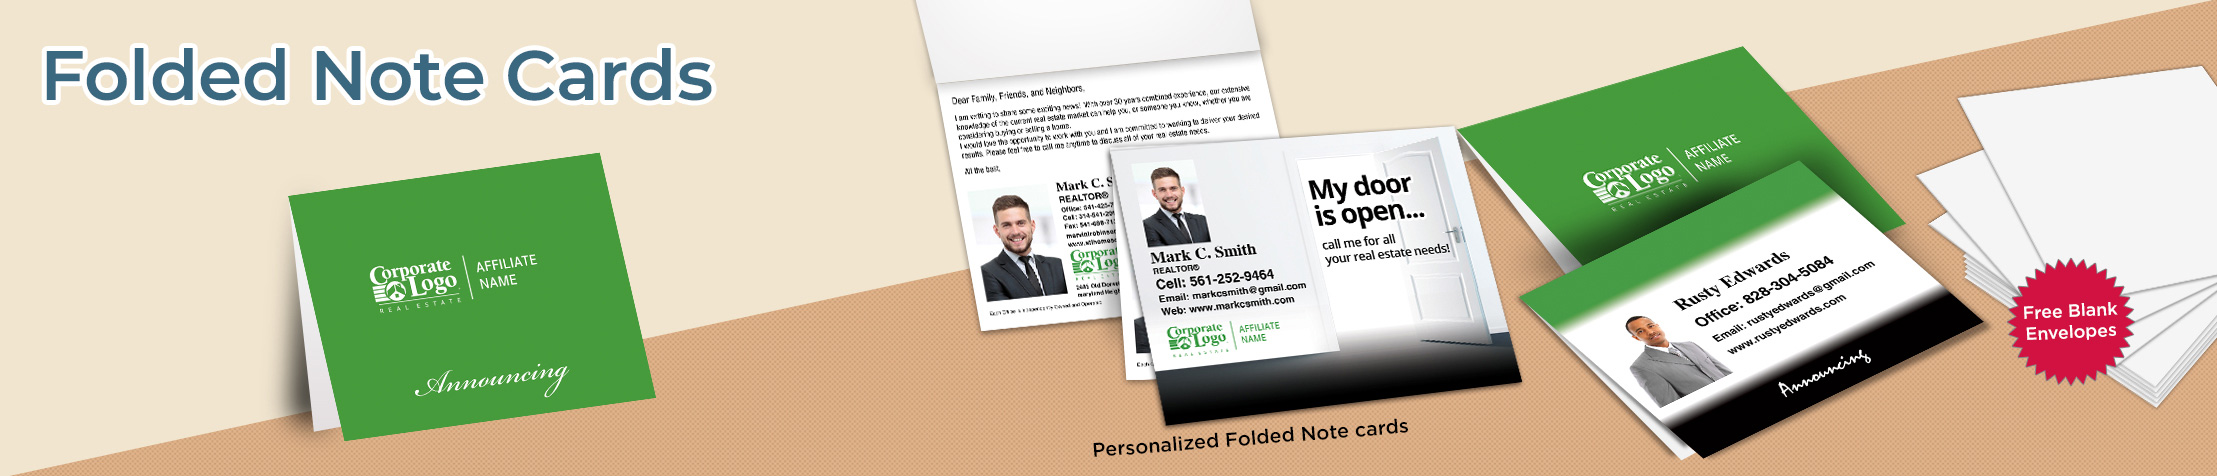 Better Homes and Gardens Real Estate  Folded Note Cards - BHGRE stationery | BestPrintBuy.com